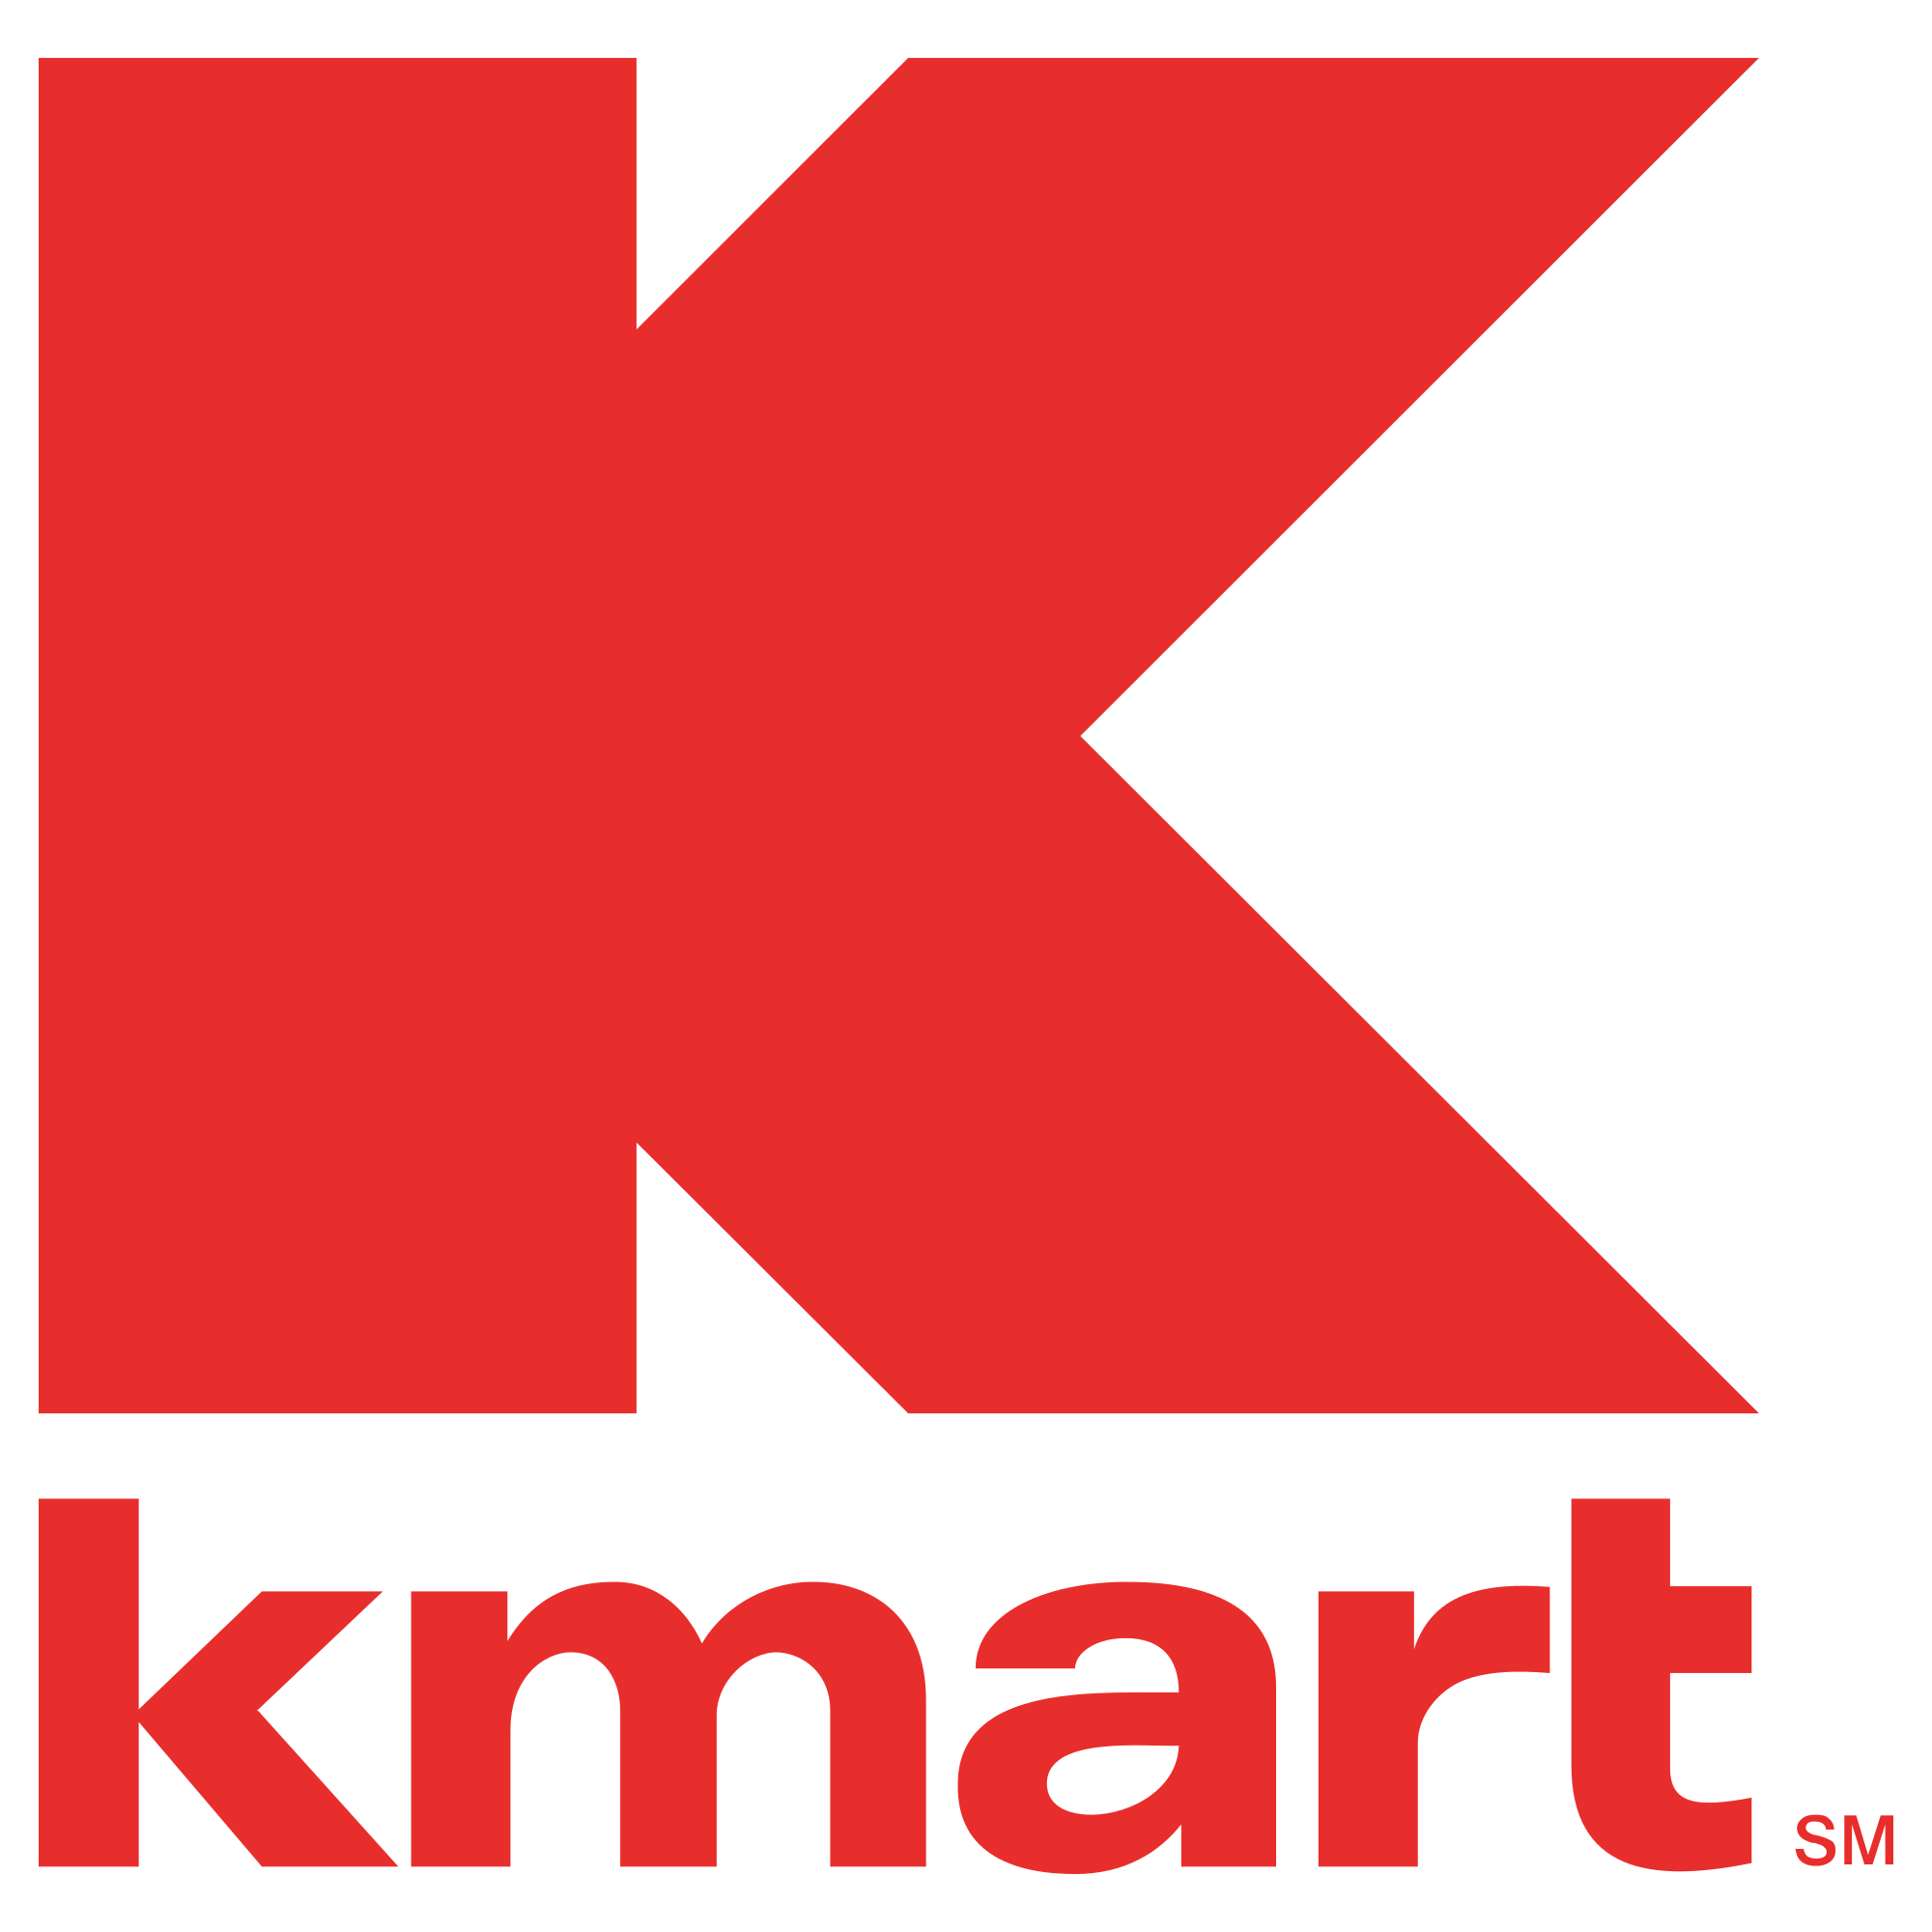 Kmart Mens Apparel + Shoes Stacking Promos: Spend $62 OOP online, Receive $60 in SYWR points (or more with coupons) for Max members. Not rolling.